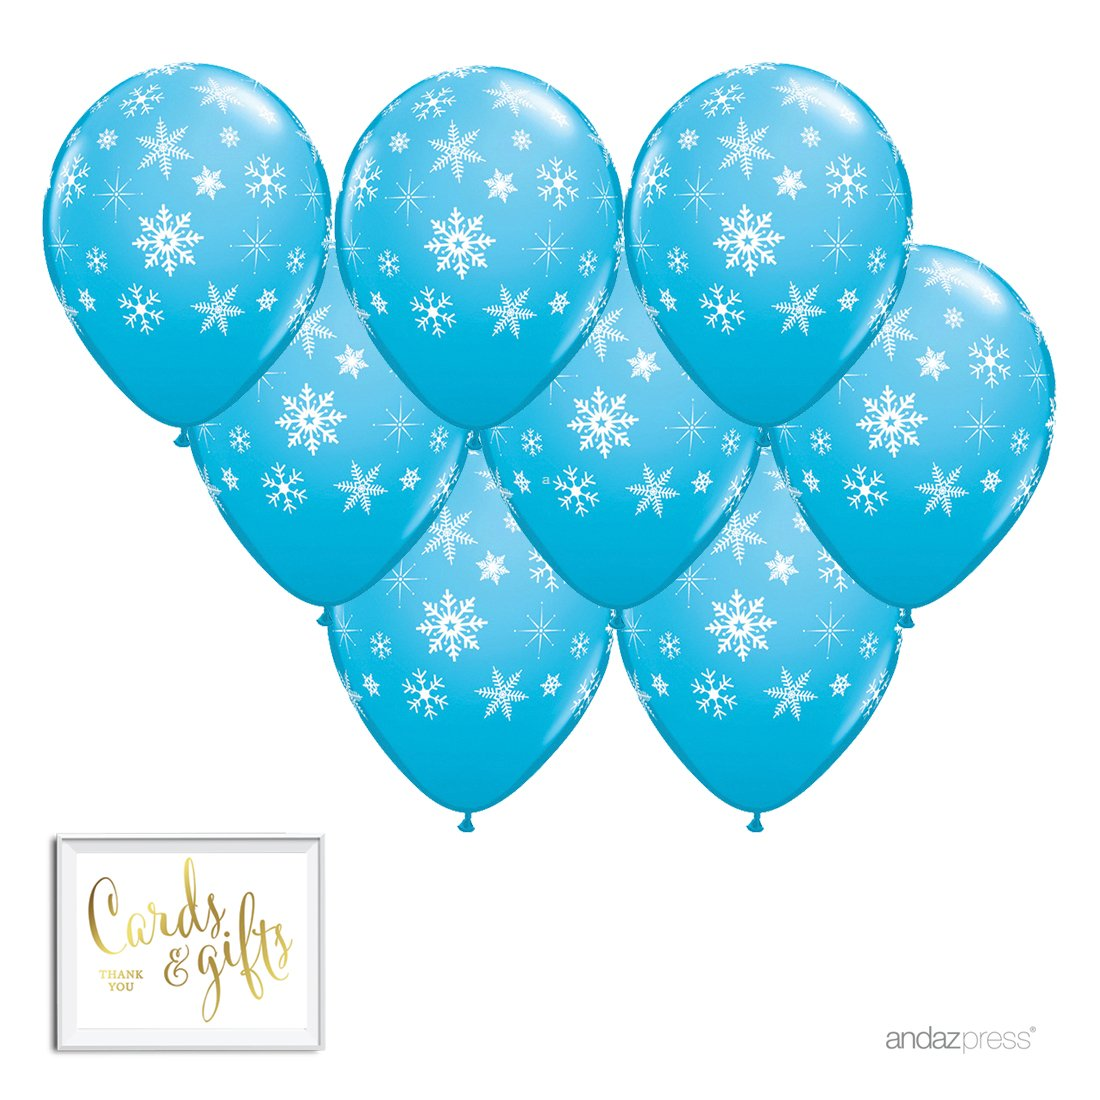 Andaz Press Printed Latex Balloon Party Kit with Gold Cards Gifts Sign, Frozen Blue Winter Snowflakes, 8-Pk